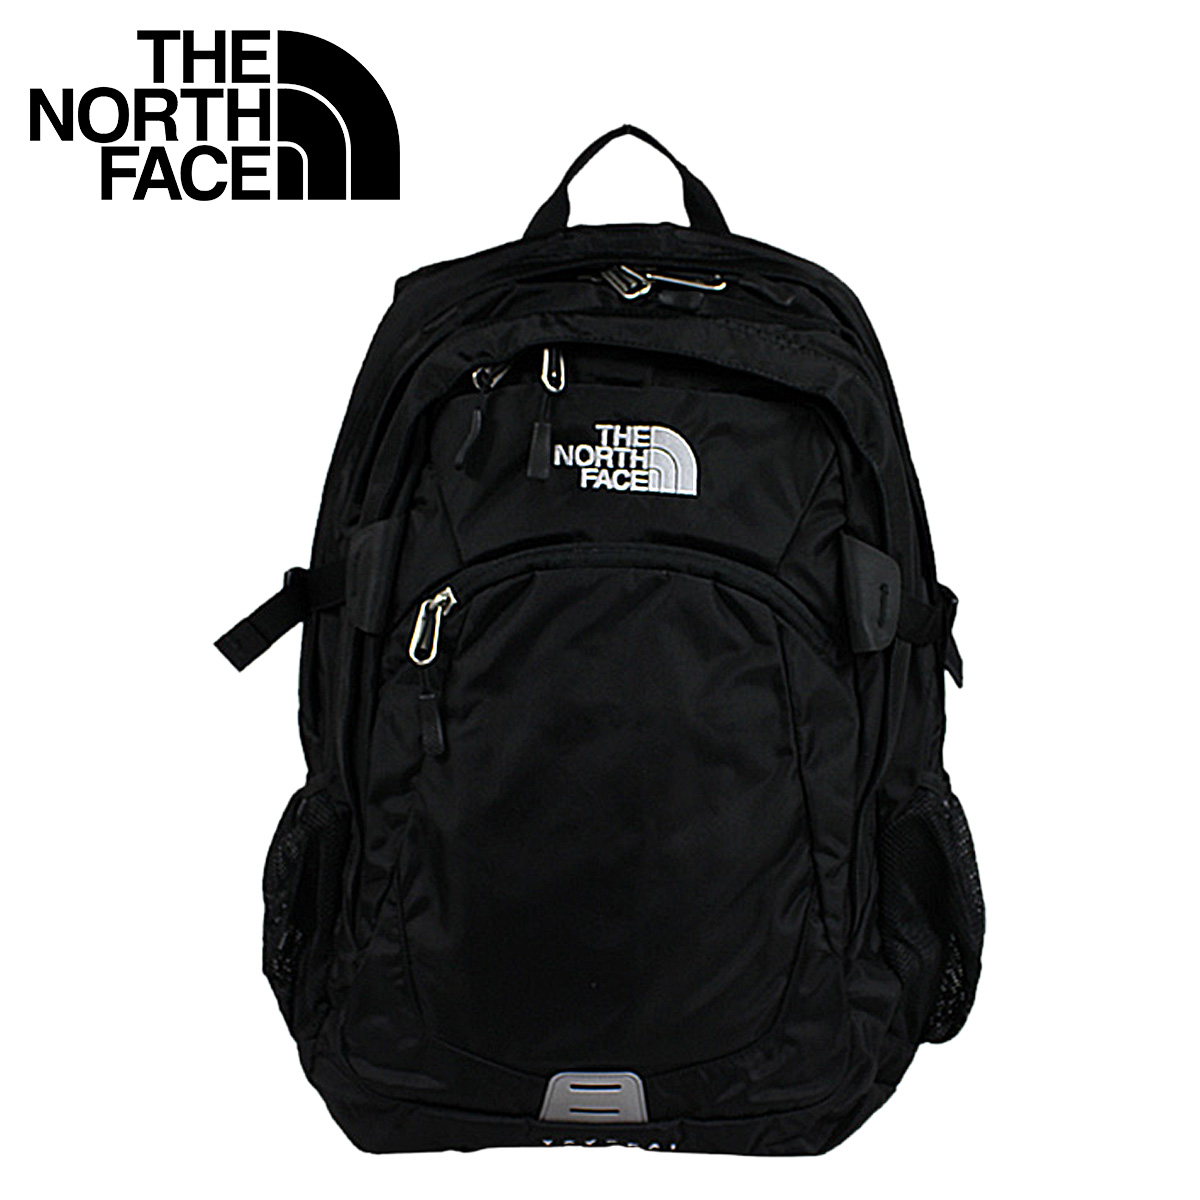 Whats Up Sports Sold Out The North Face Backpack Rucksack Black Yavapai A92z Mens Rakuten Global Market